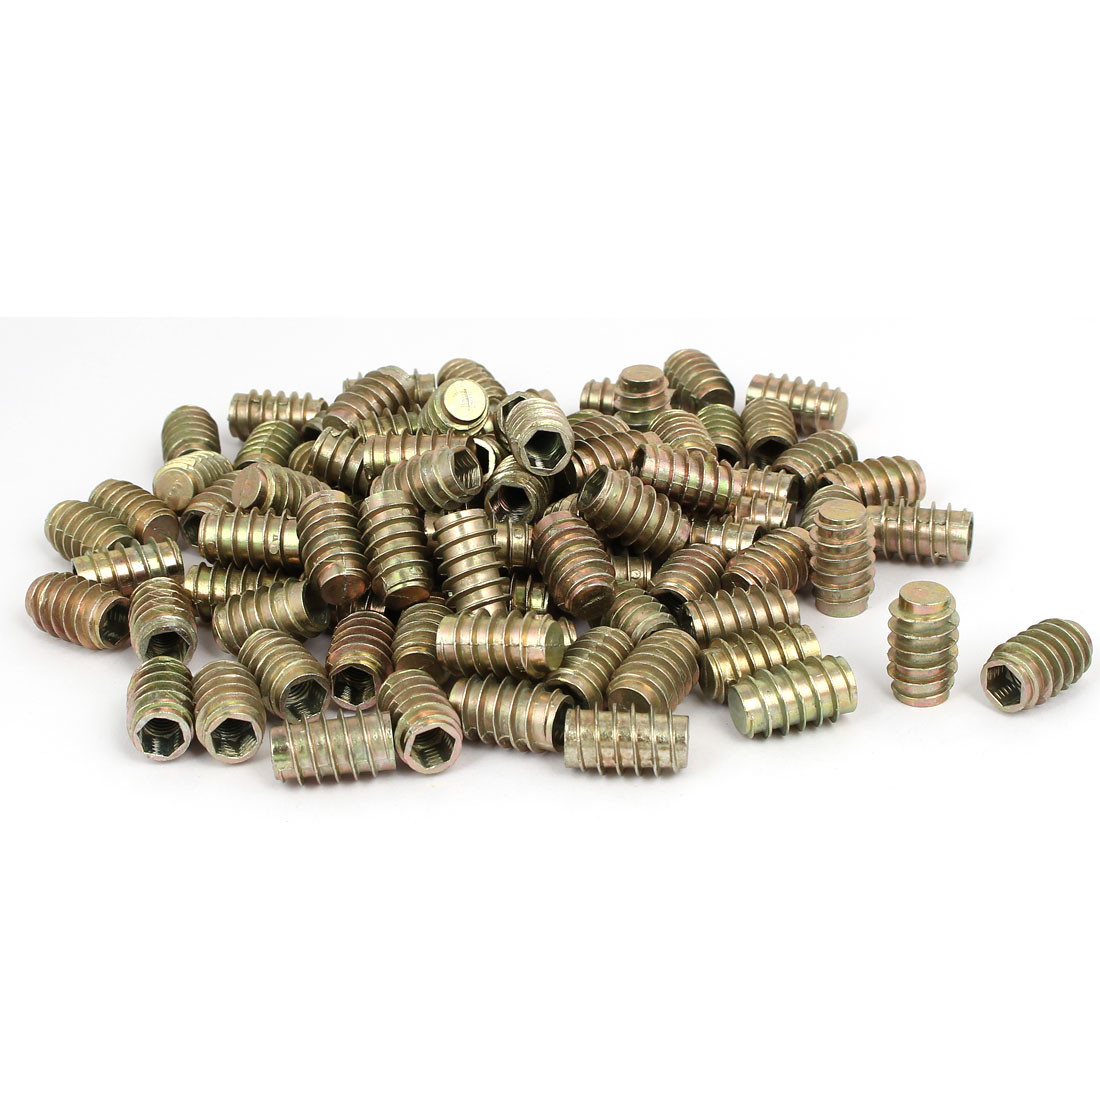 Furniture Zinc Alloy Blind Hole Hex Socket Insert Screws E-Nuts M8x25mm 100pcs